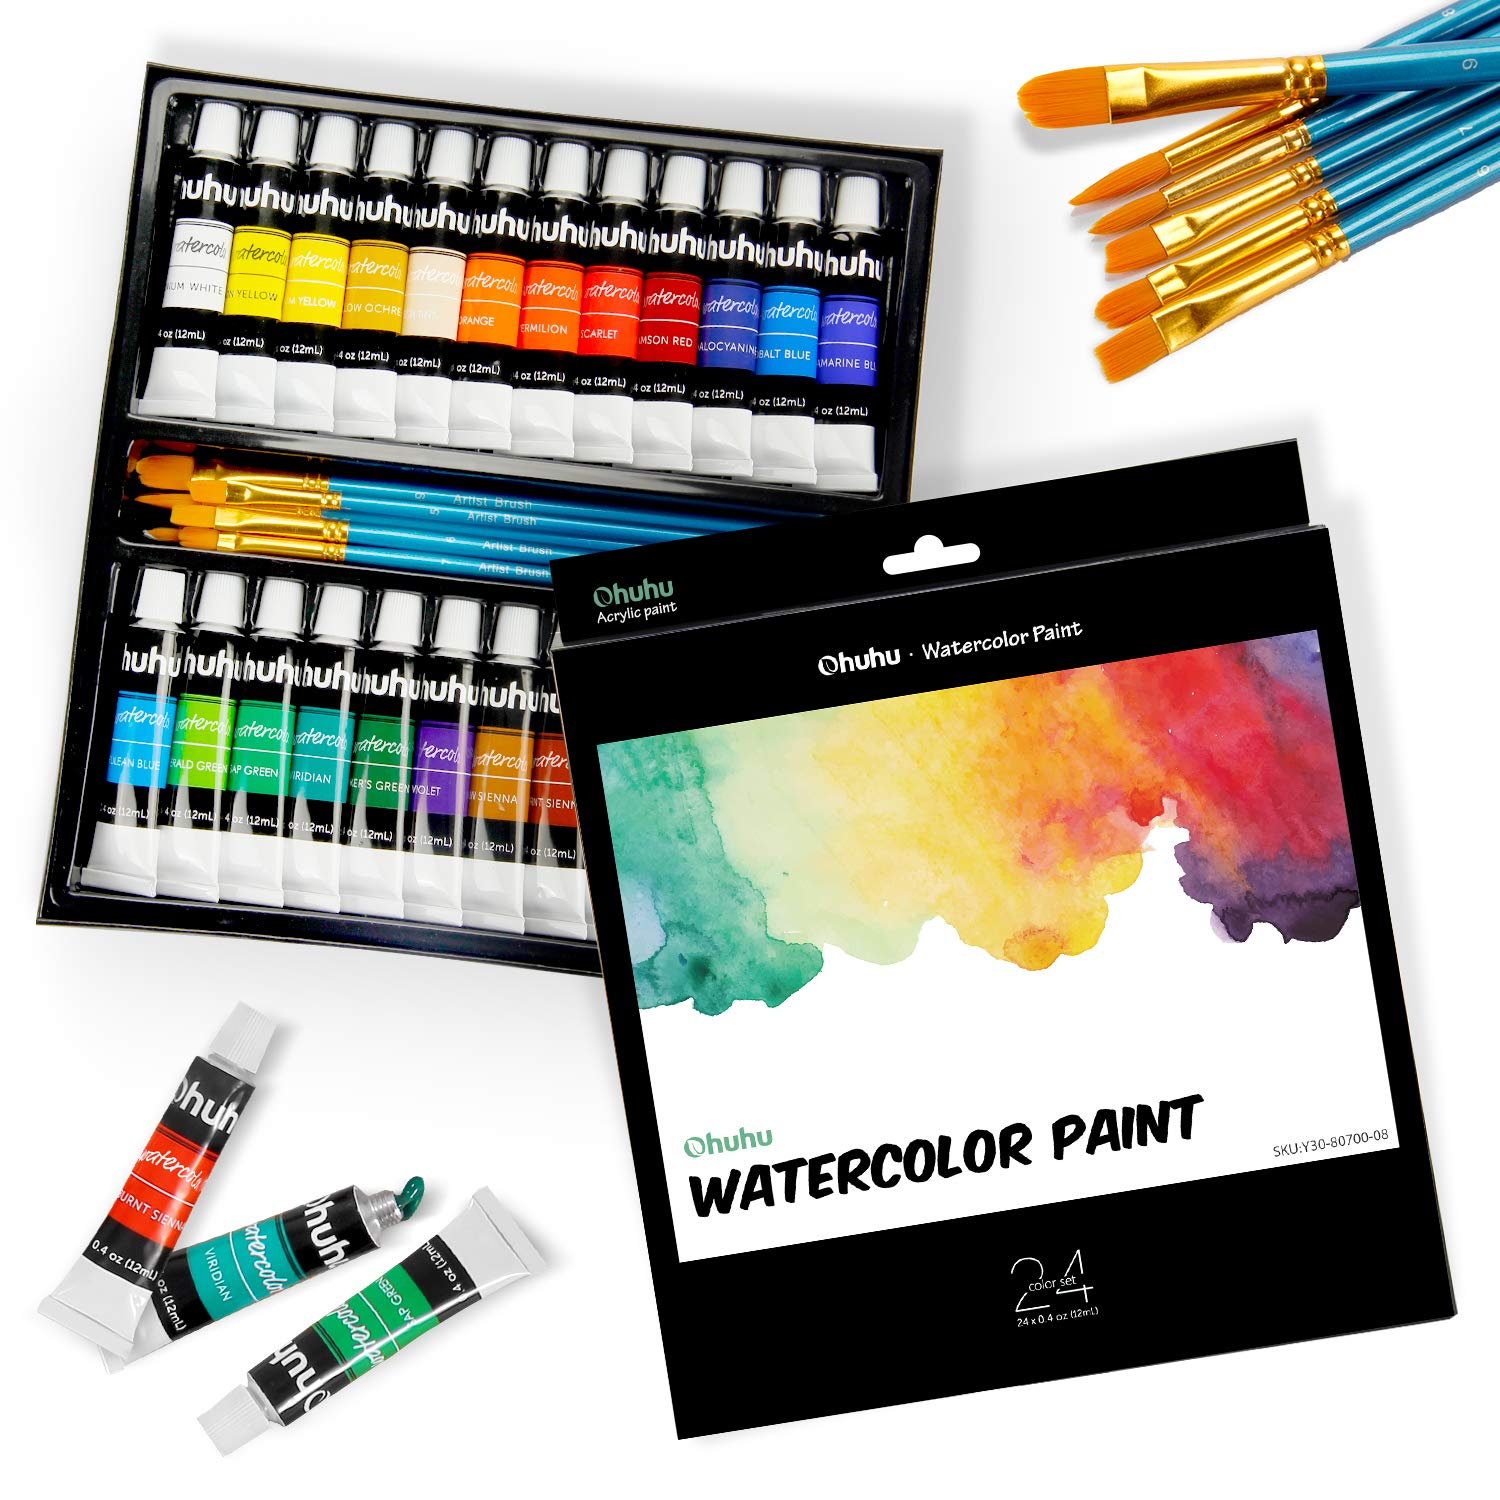 Watercolor Paint Set by Ohuhu 24 Premium Quality Art Watercolors Painting Kit with 6 Painting Brushes for Artists, Students Beginners - Perfect for Landscape Portrait Paintings on Canvas (24 x 12ml) by Ohuhu